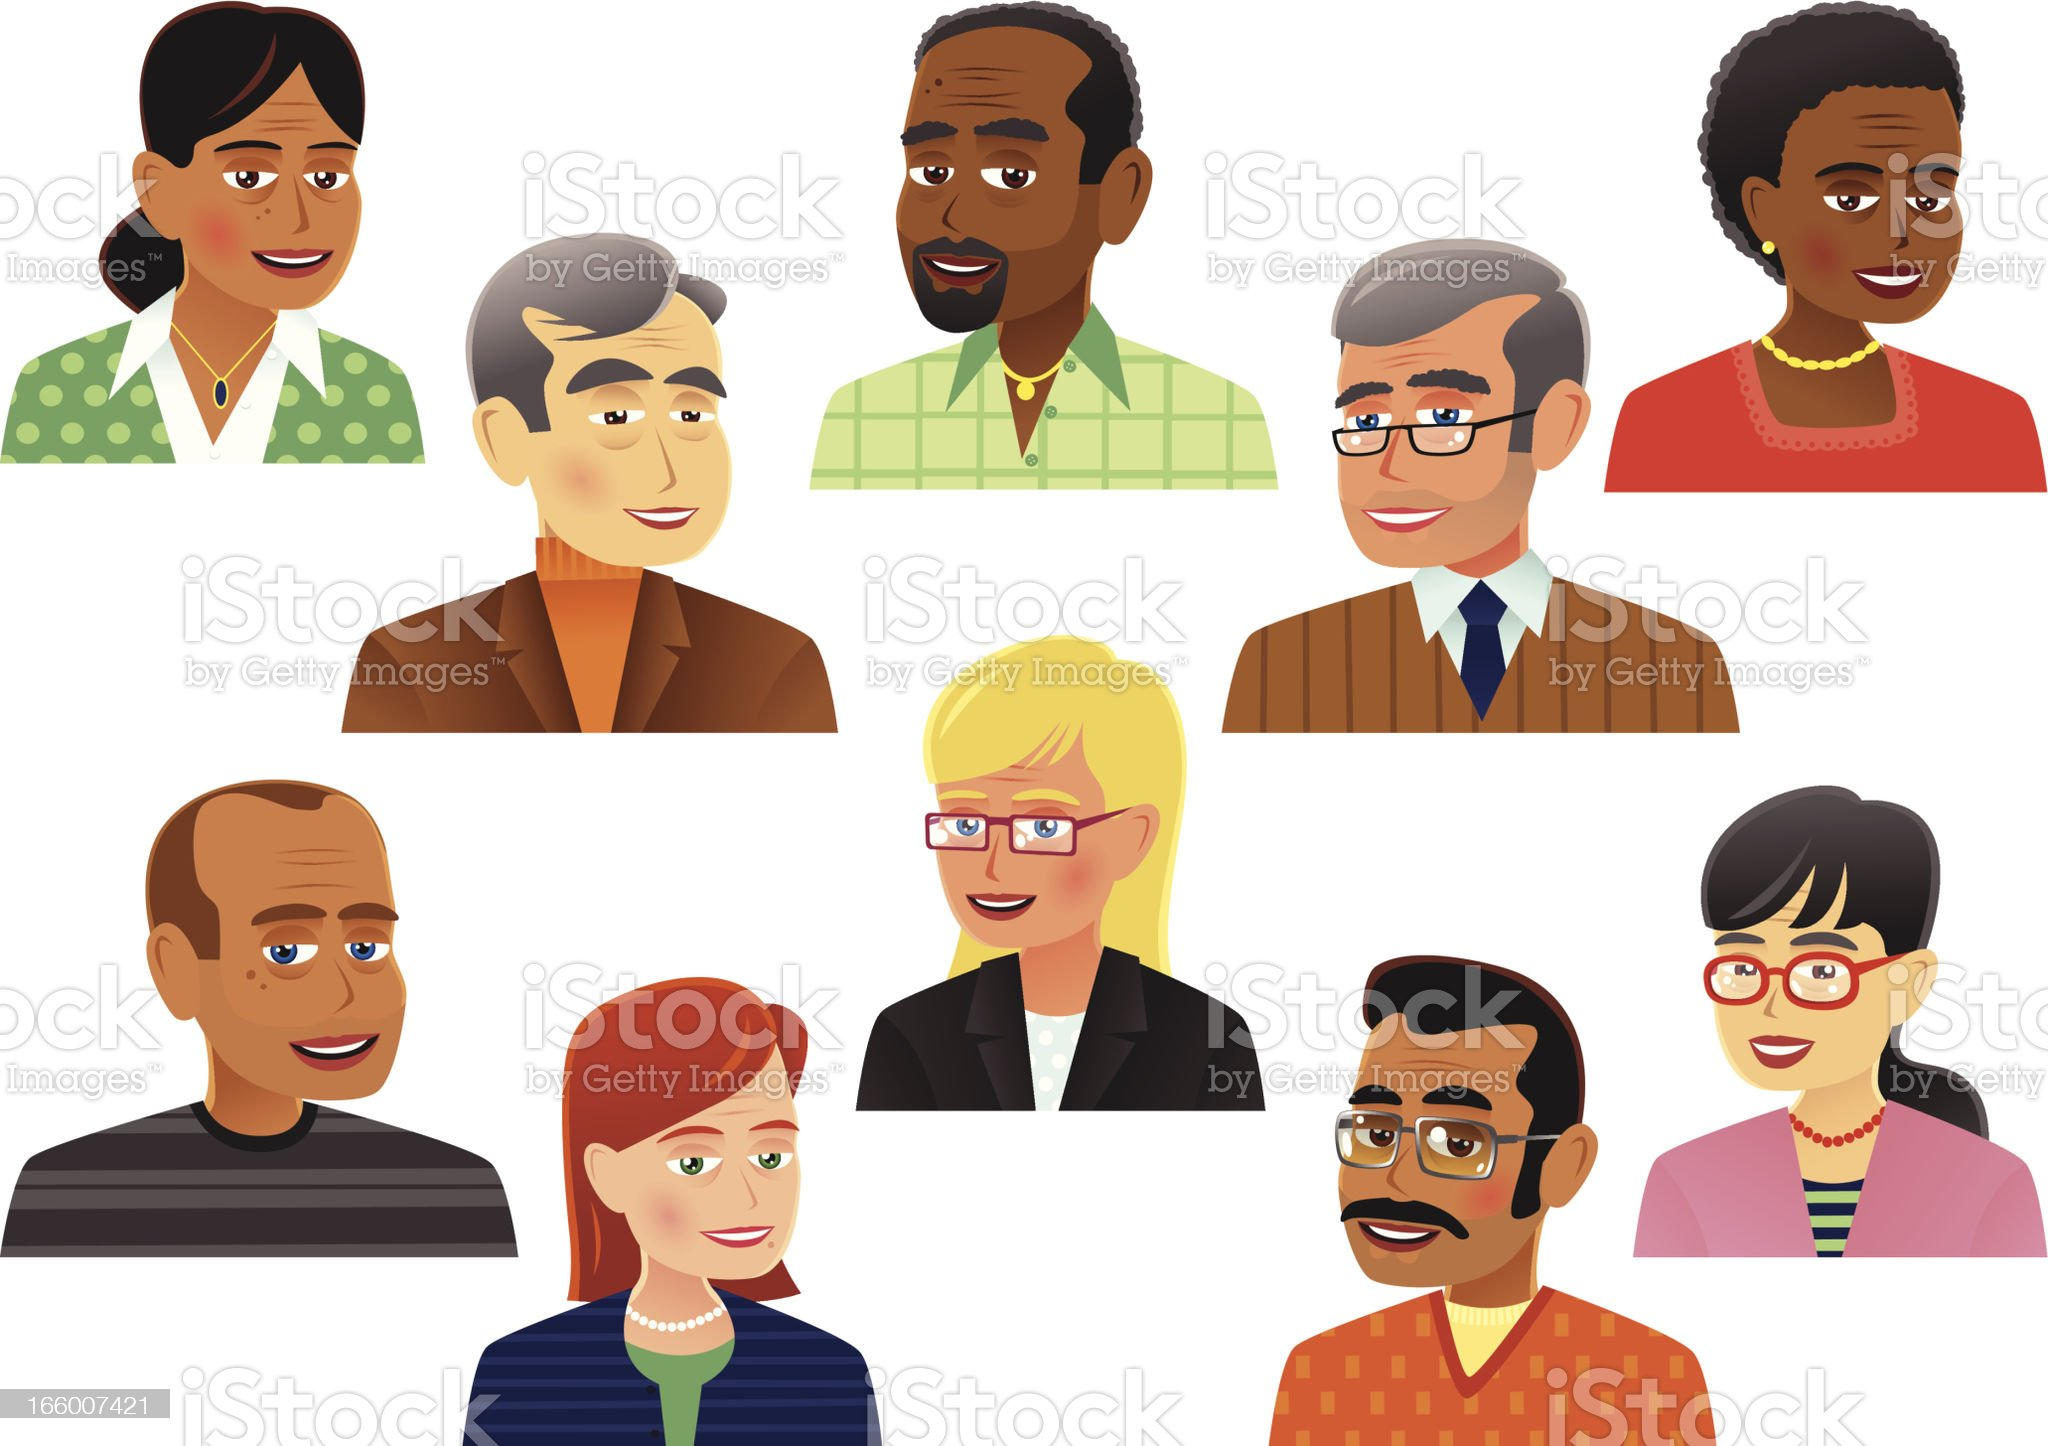 Collection of older people heads royalty-free stock vector art